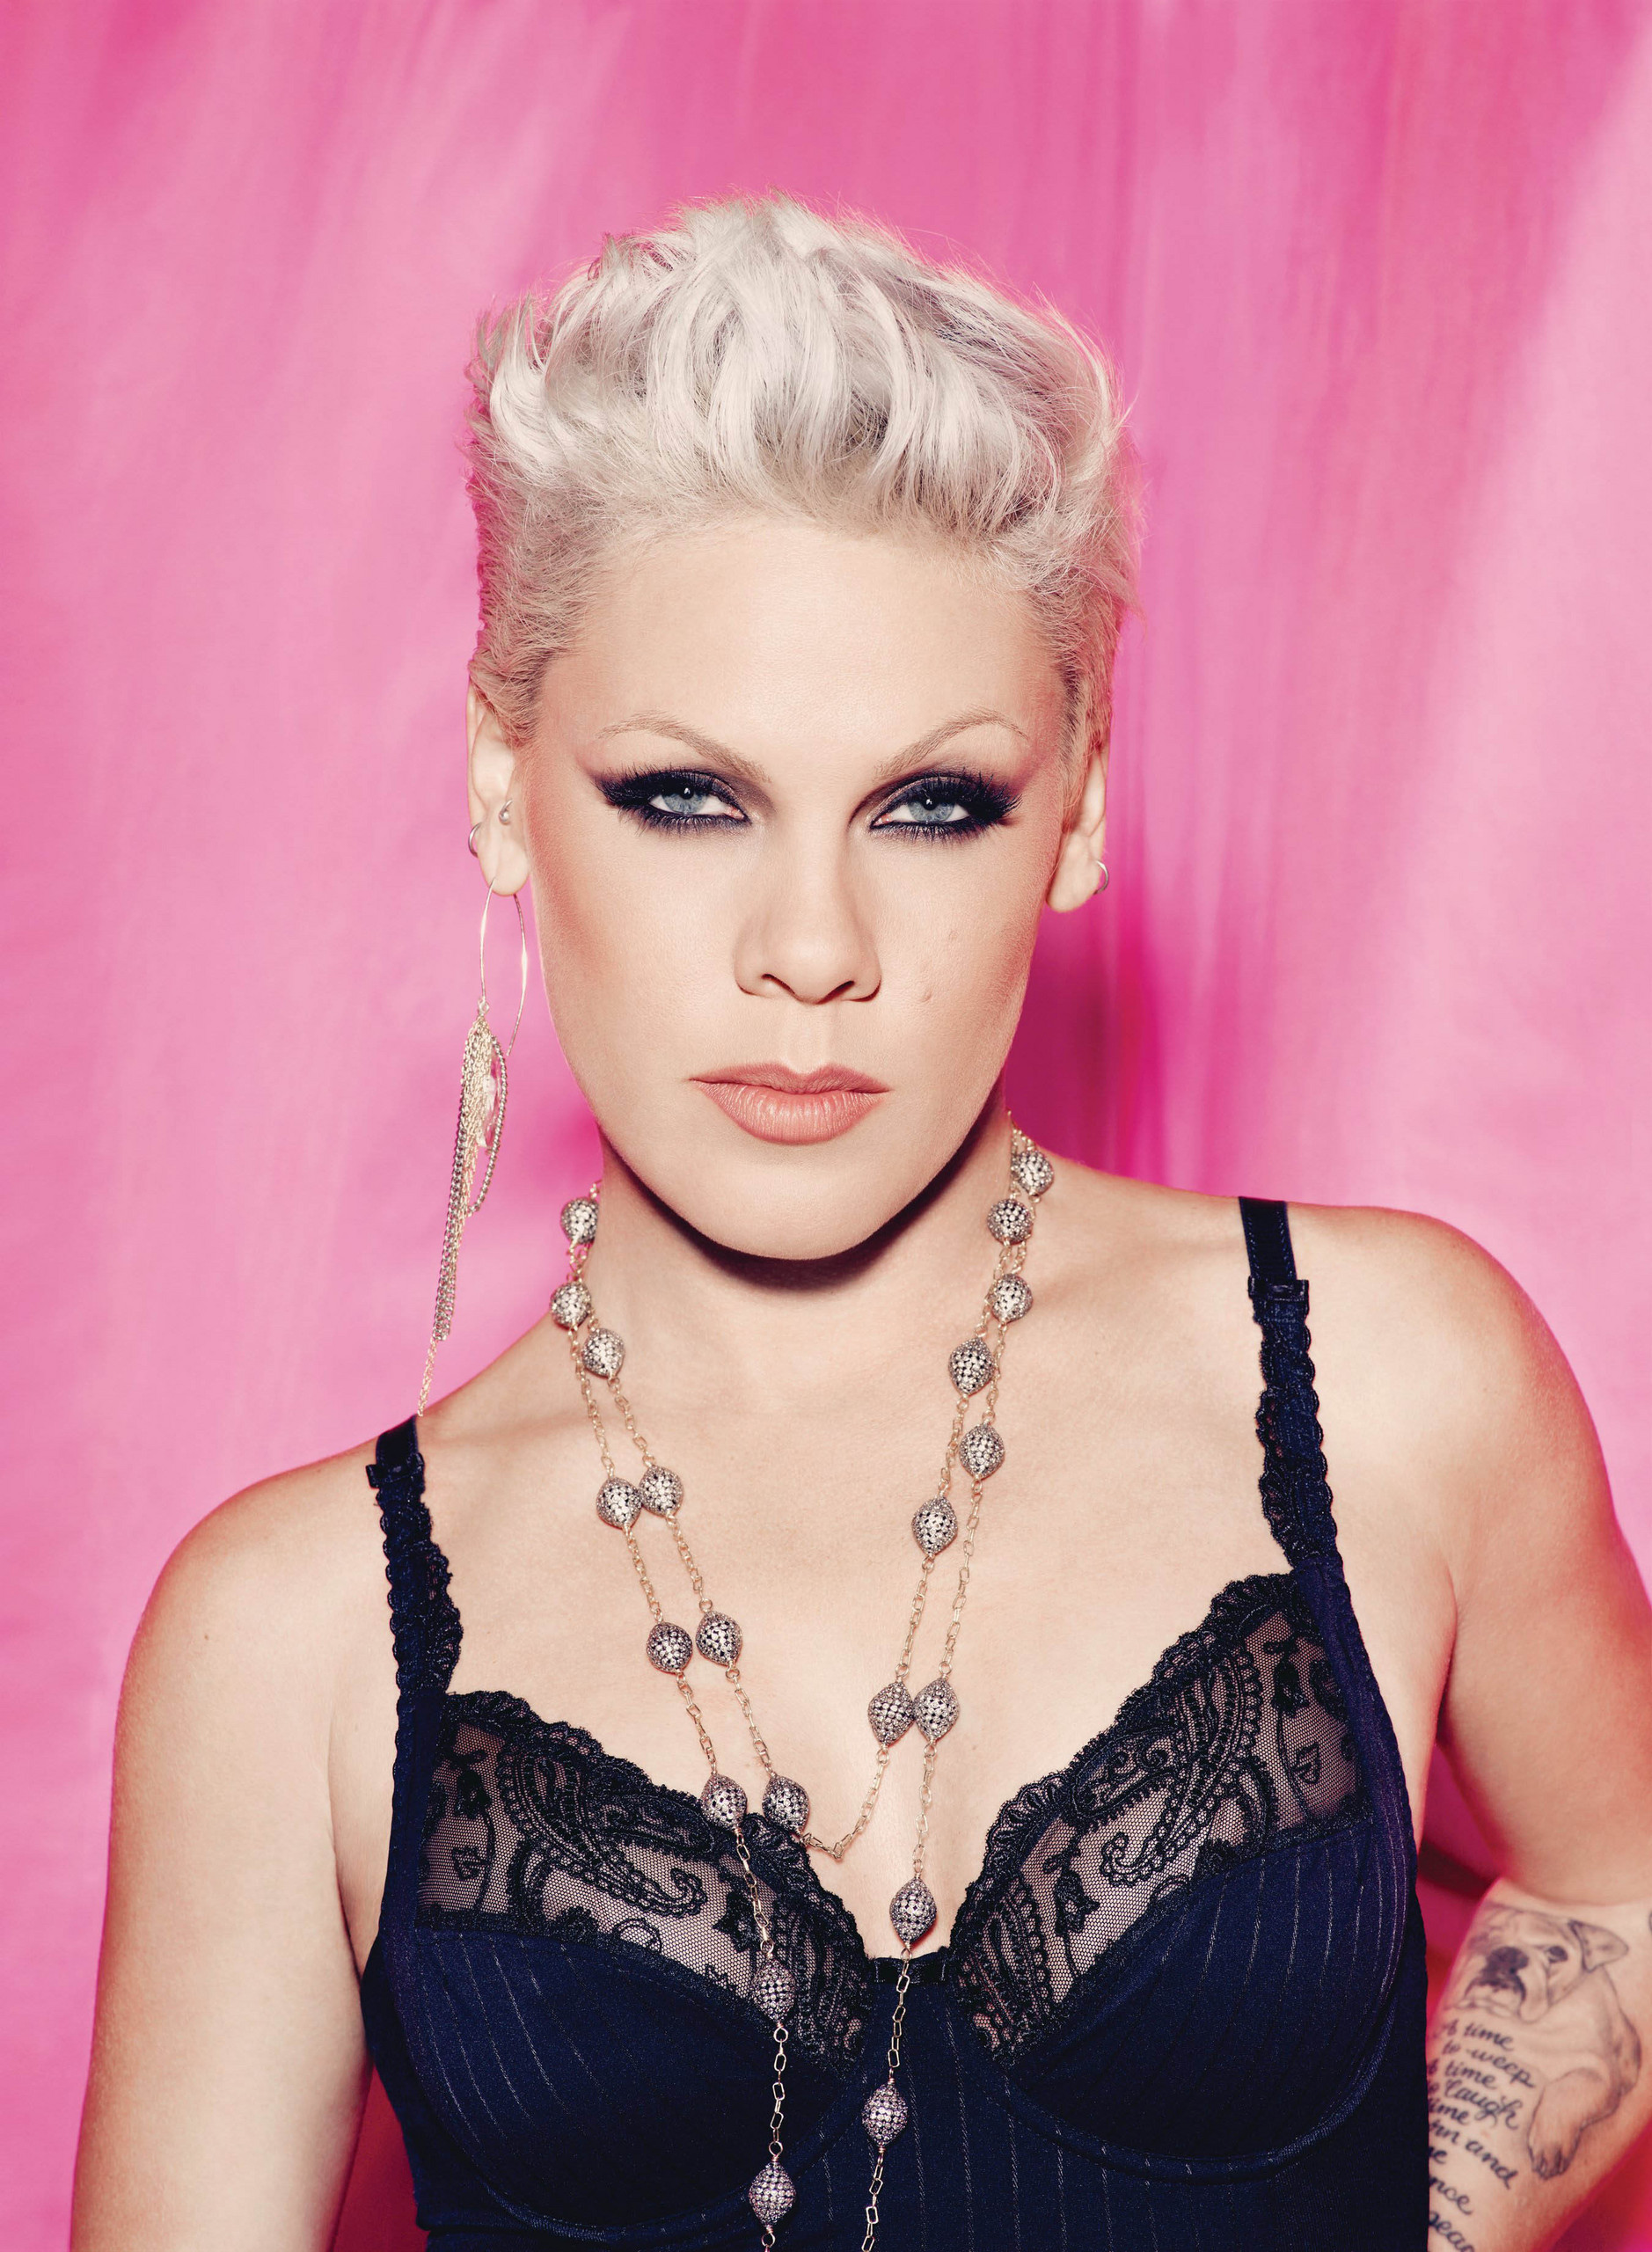 P Nk Pink Photo 17650900 Fanpop